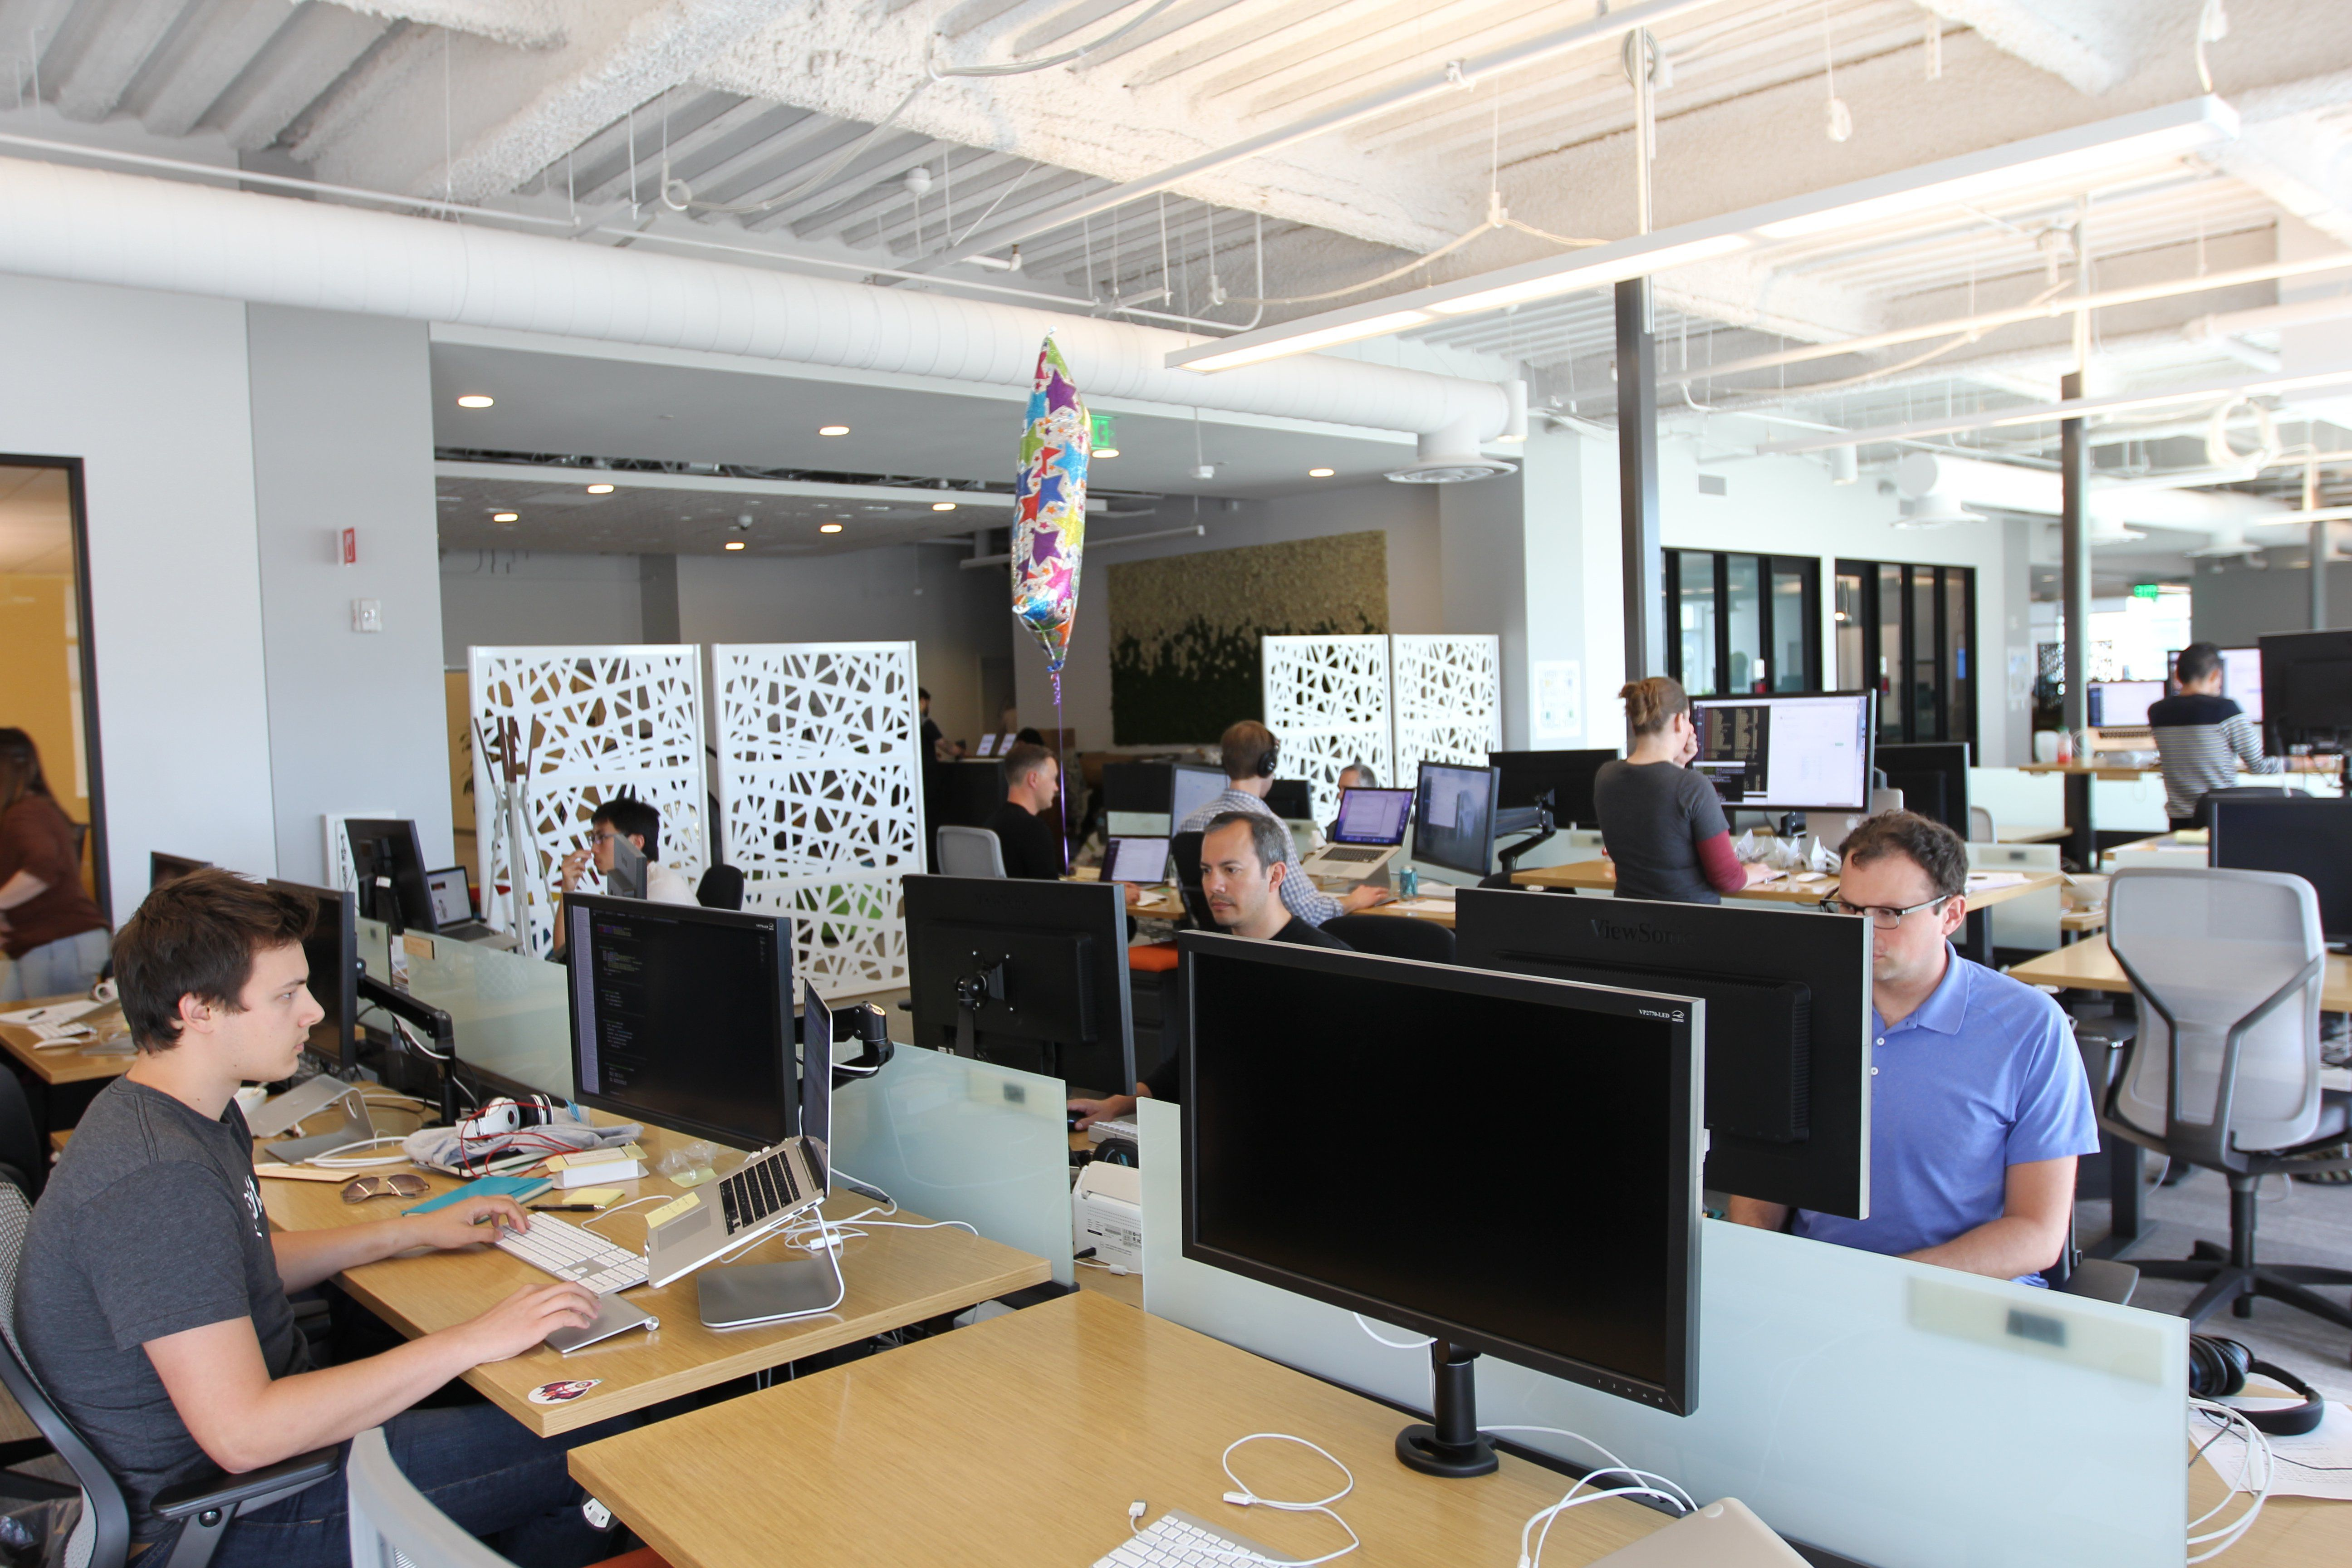 Slack'sfourth venture capital investment to date, Automat's communication technologymixes messaging, artificial intelligence andchatbots.